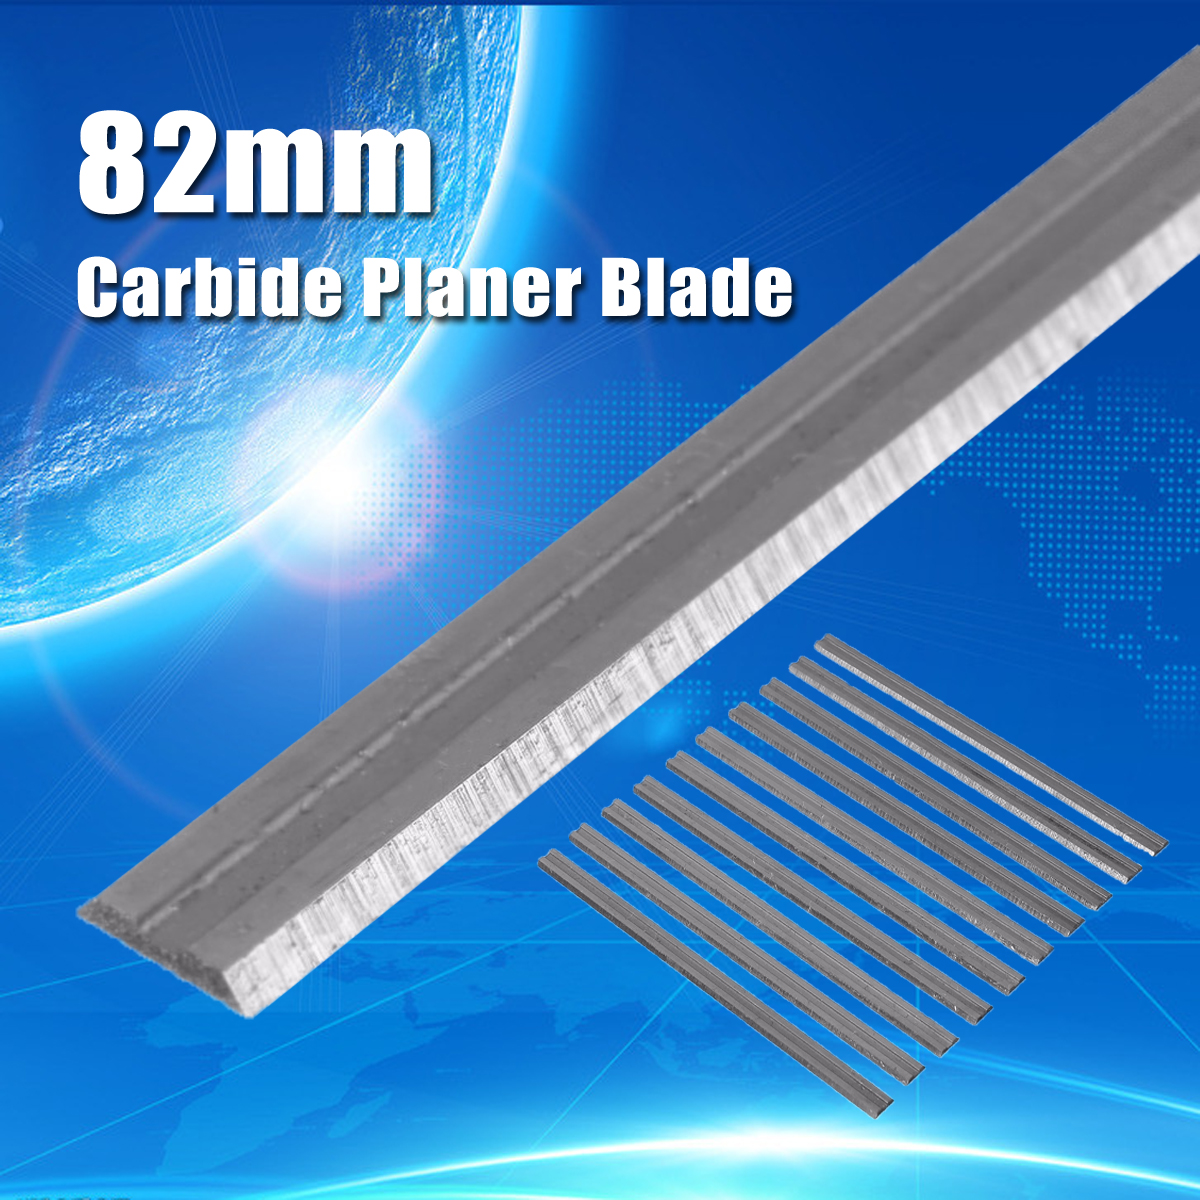 New 10Pcs 82mm X 5.5mm Reversible Carbide Planer Blades For Cutting Soft Hard Woods Ply-wood Board Woodworking Power Tool